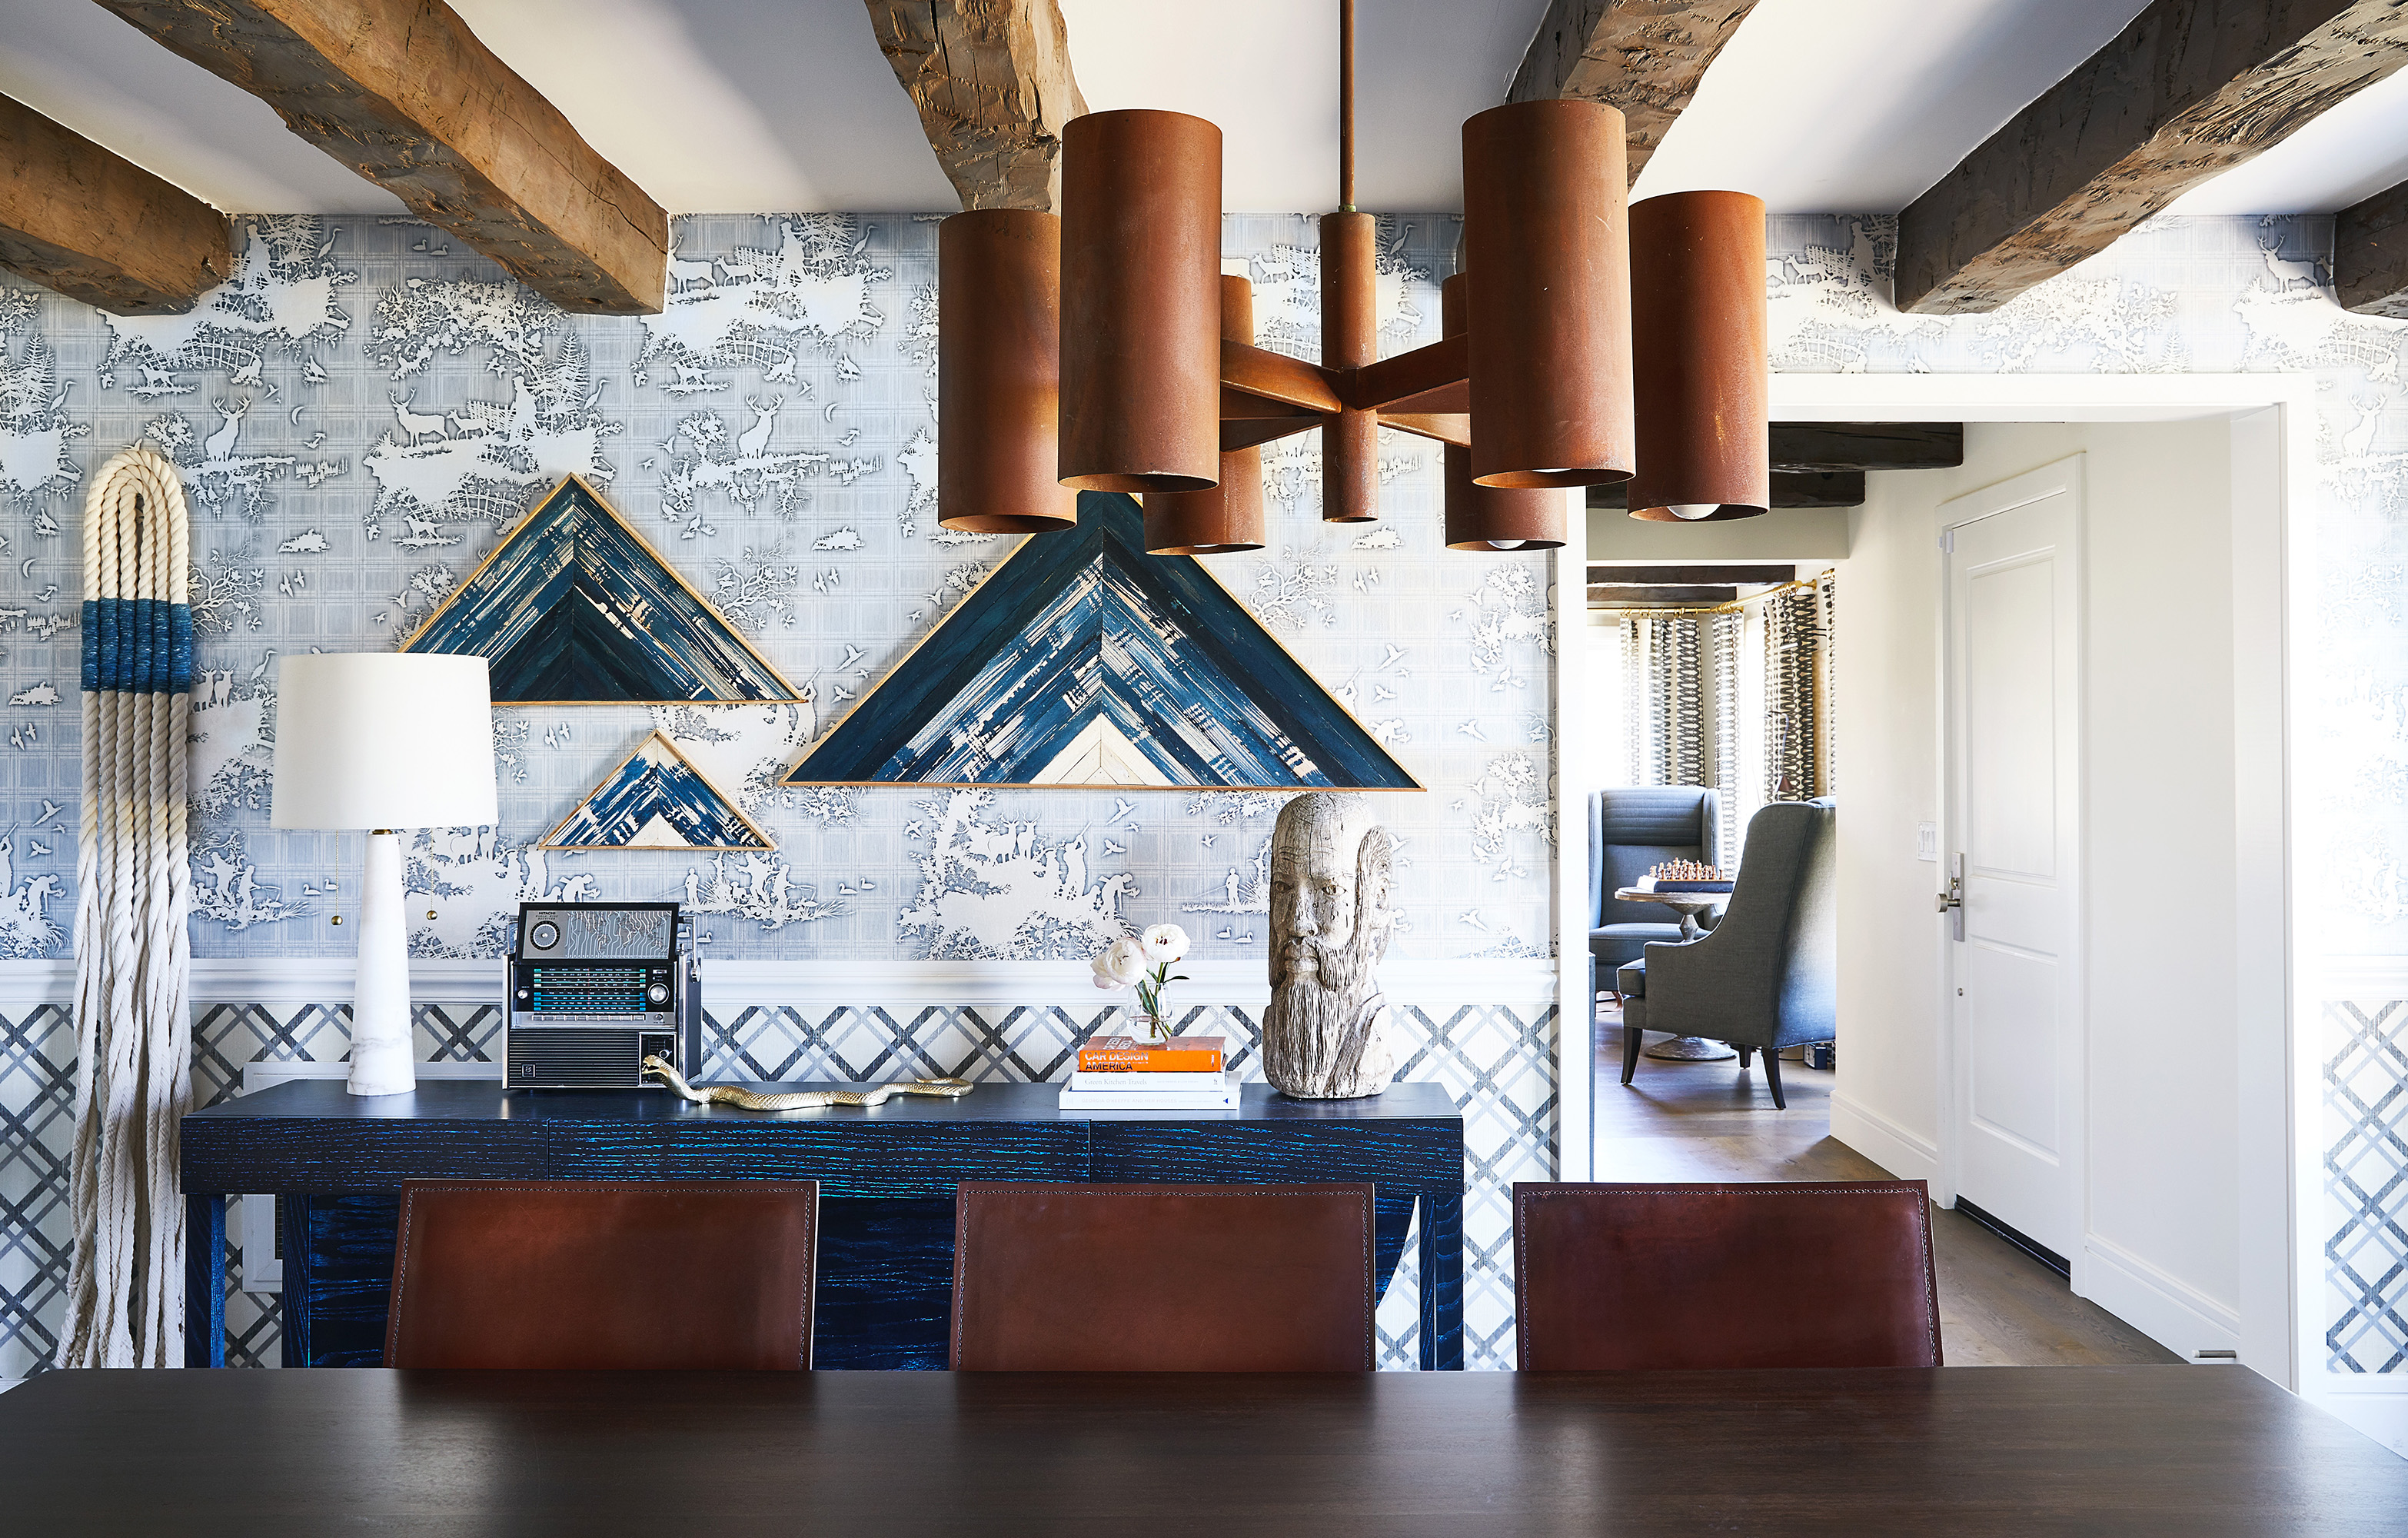 A guide to wall finishes: wallpaper, plaster, and more